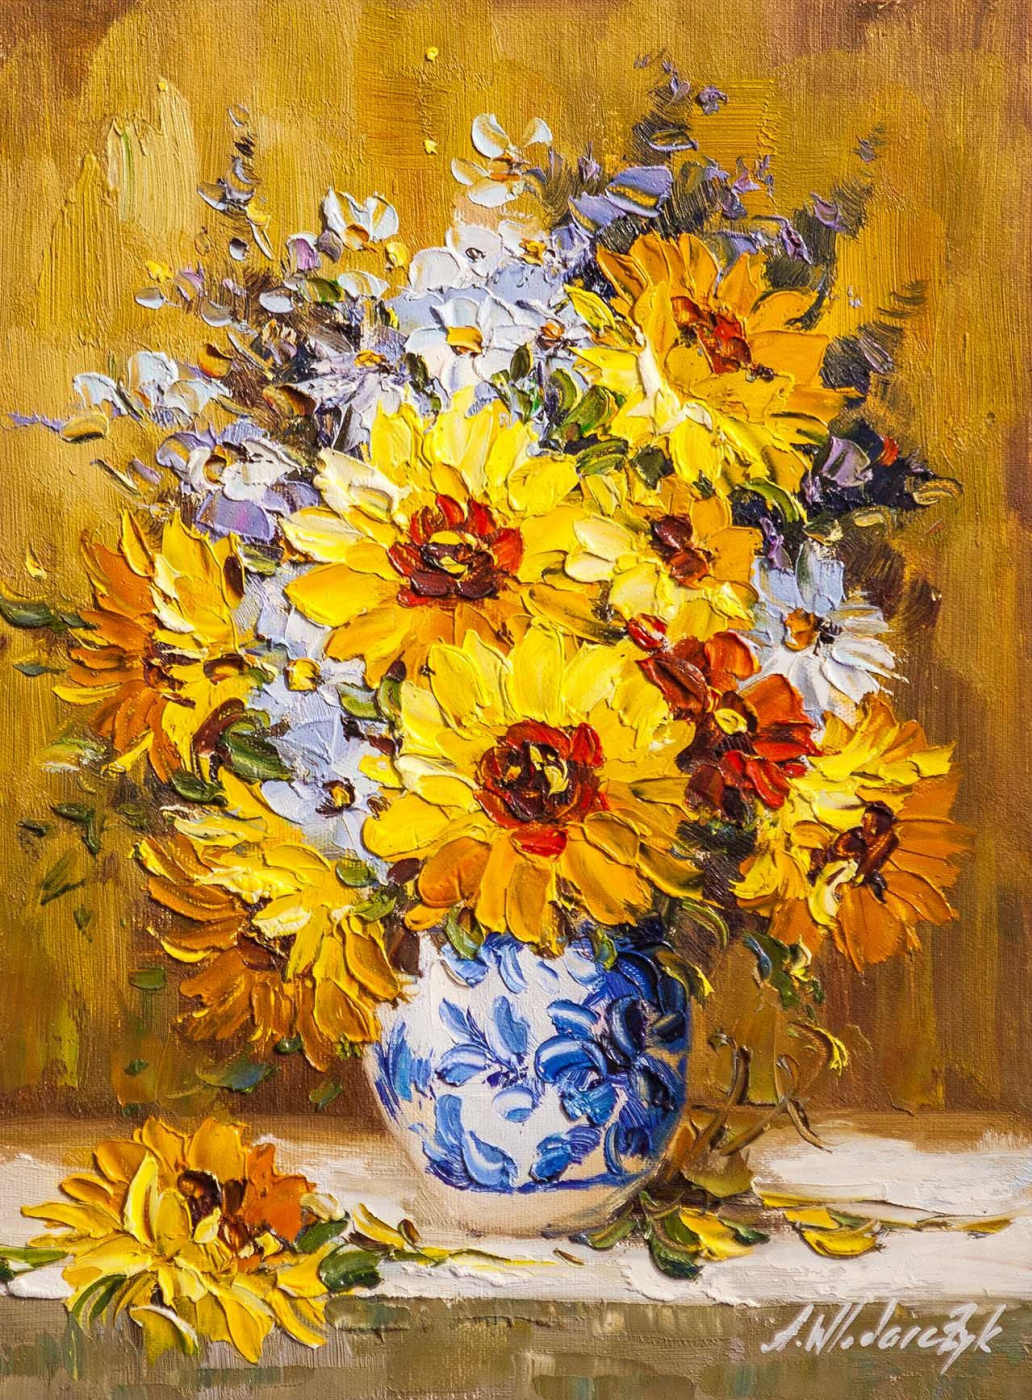 Andrzej Vlodarczyk. Sunflowers in a white and blue vase